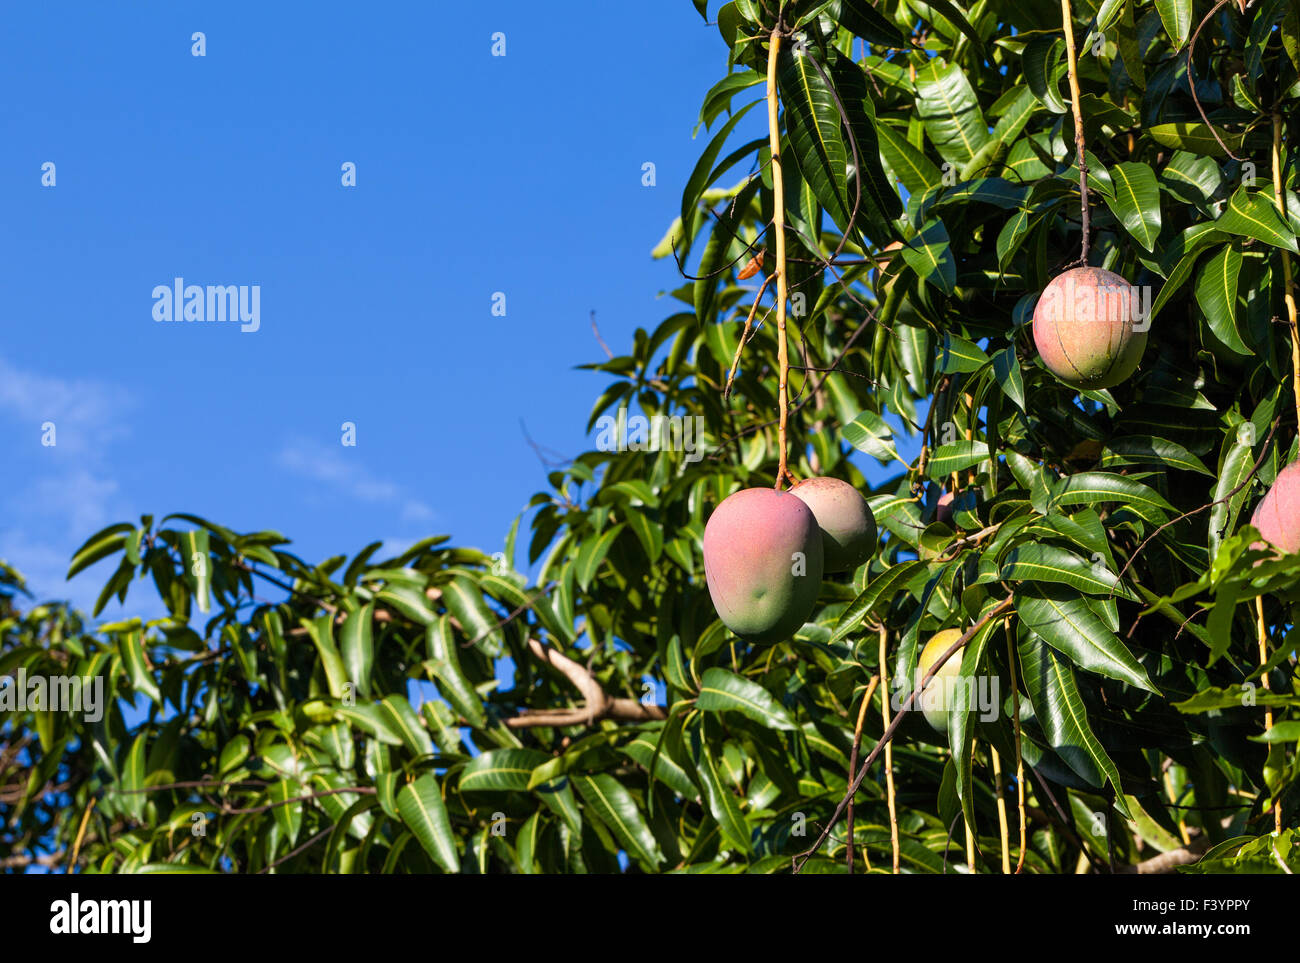 Tree With Fruits Part - 41: Cuba Mango Tree With Fruits